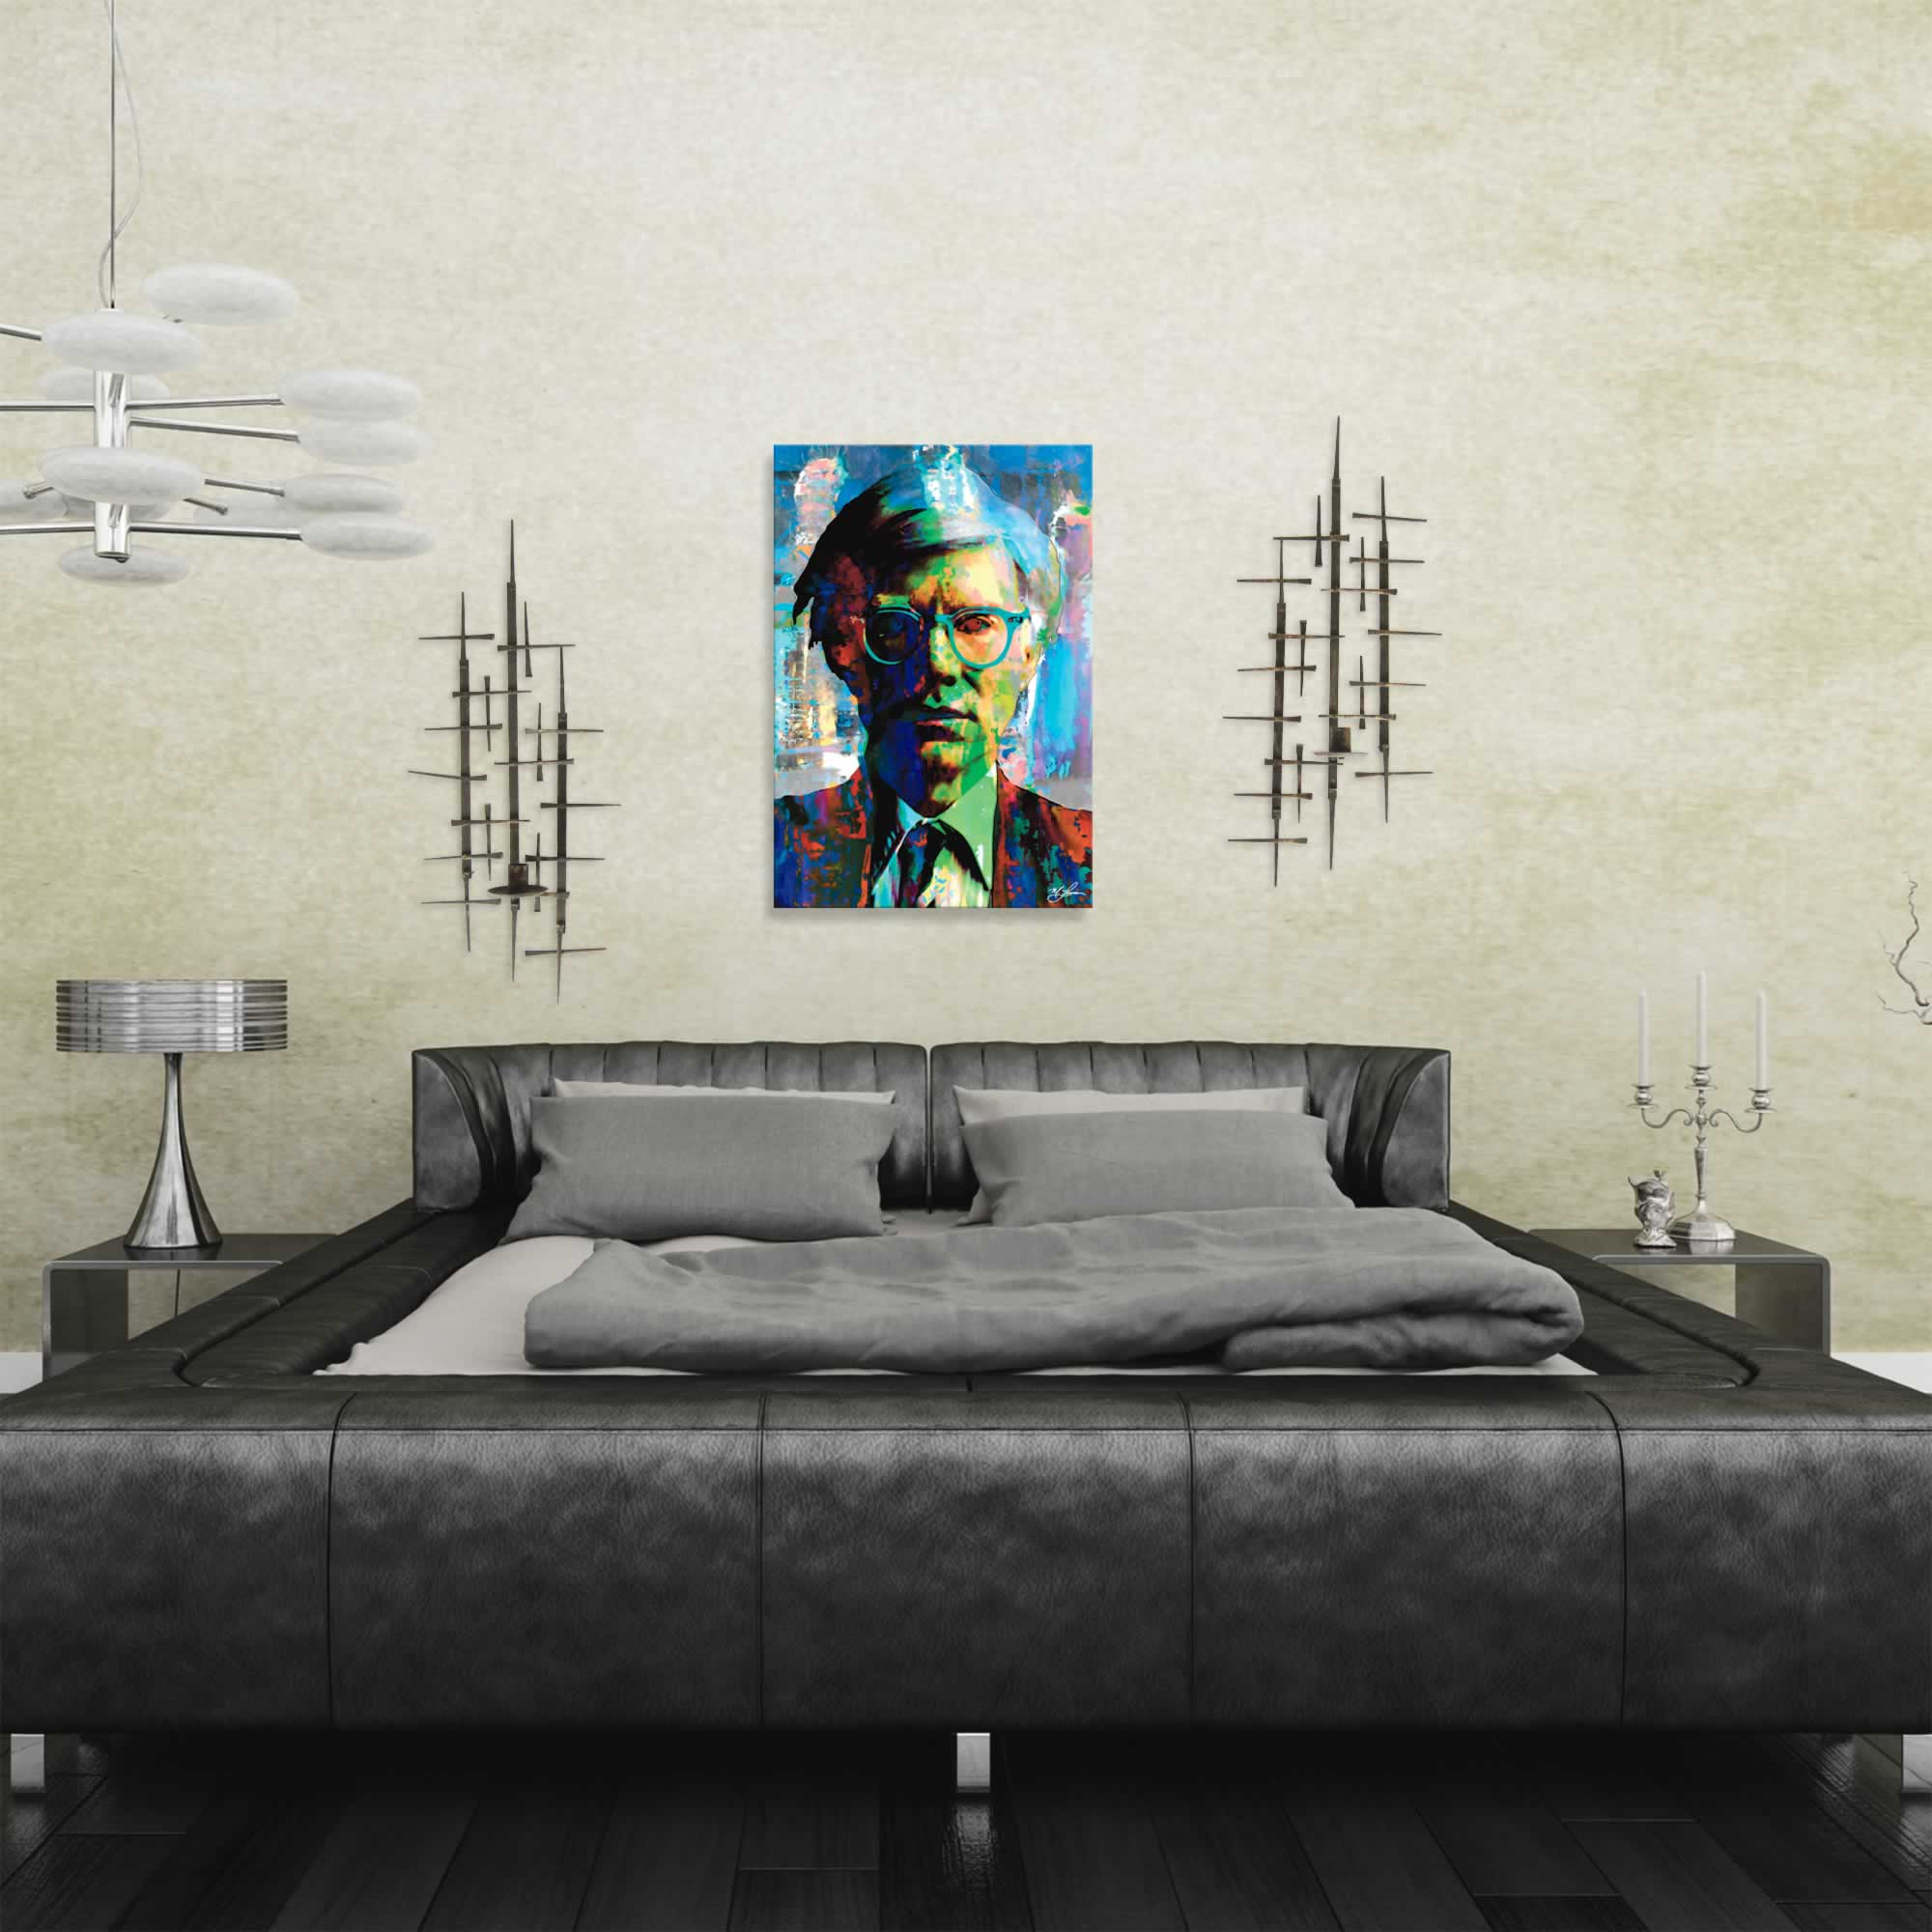 Andy Warhol 4 Wise Men | Pop Art Painting by Mark Lewis, Signed & Numbered Limited Edition - ML0008